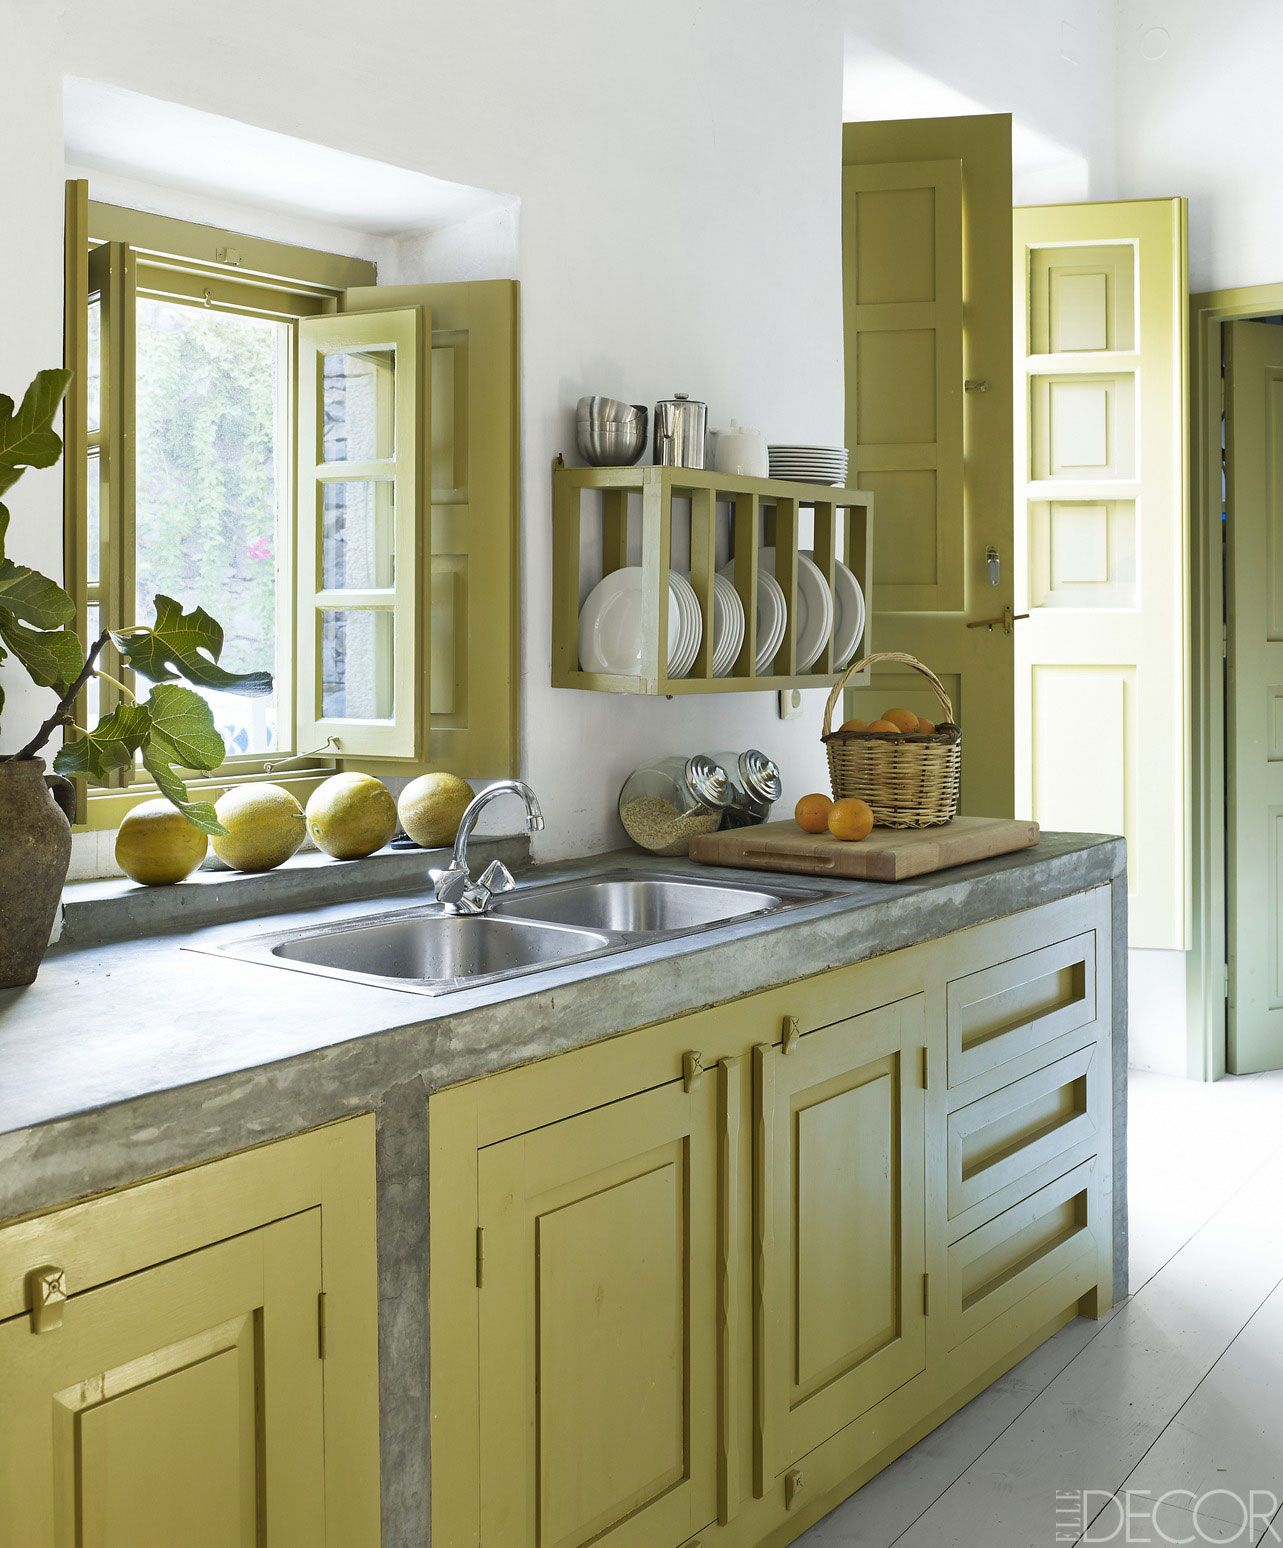 60 Brilliant Small Kitchen Ideas \u2013 Gorgeous Small Kitchen